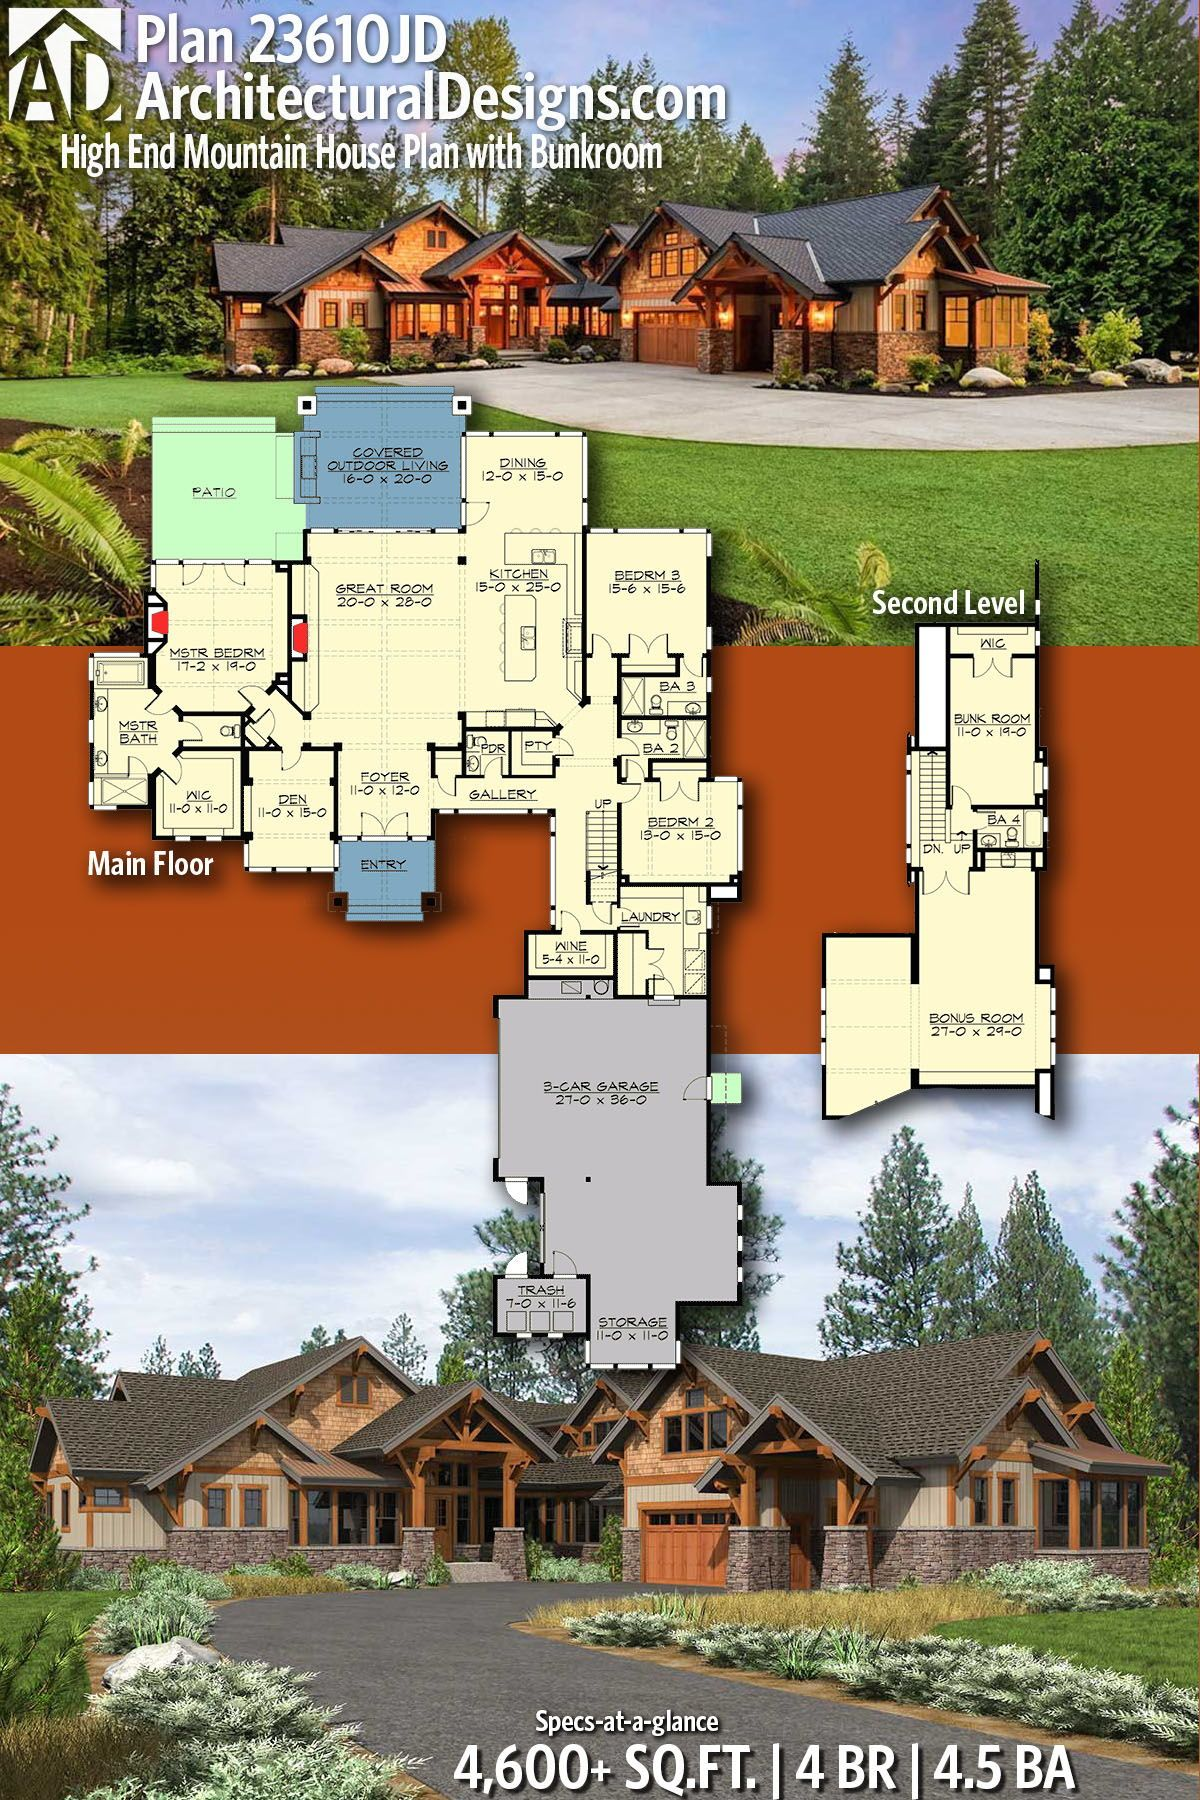 Plan 23610jd High End Mountain House Plan With Bunkroom Mountain House Plans House Plans Dream House Plans